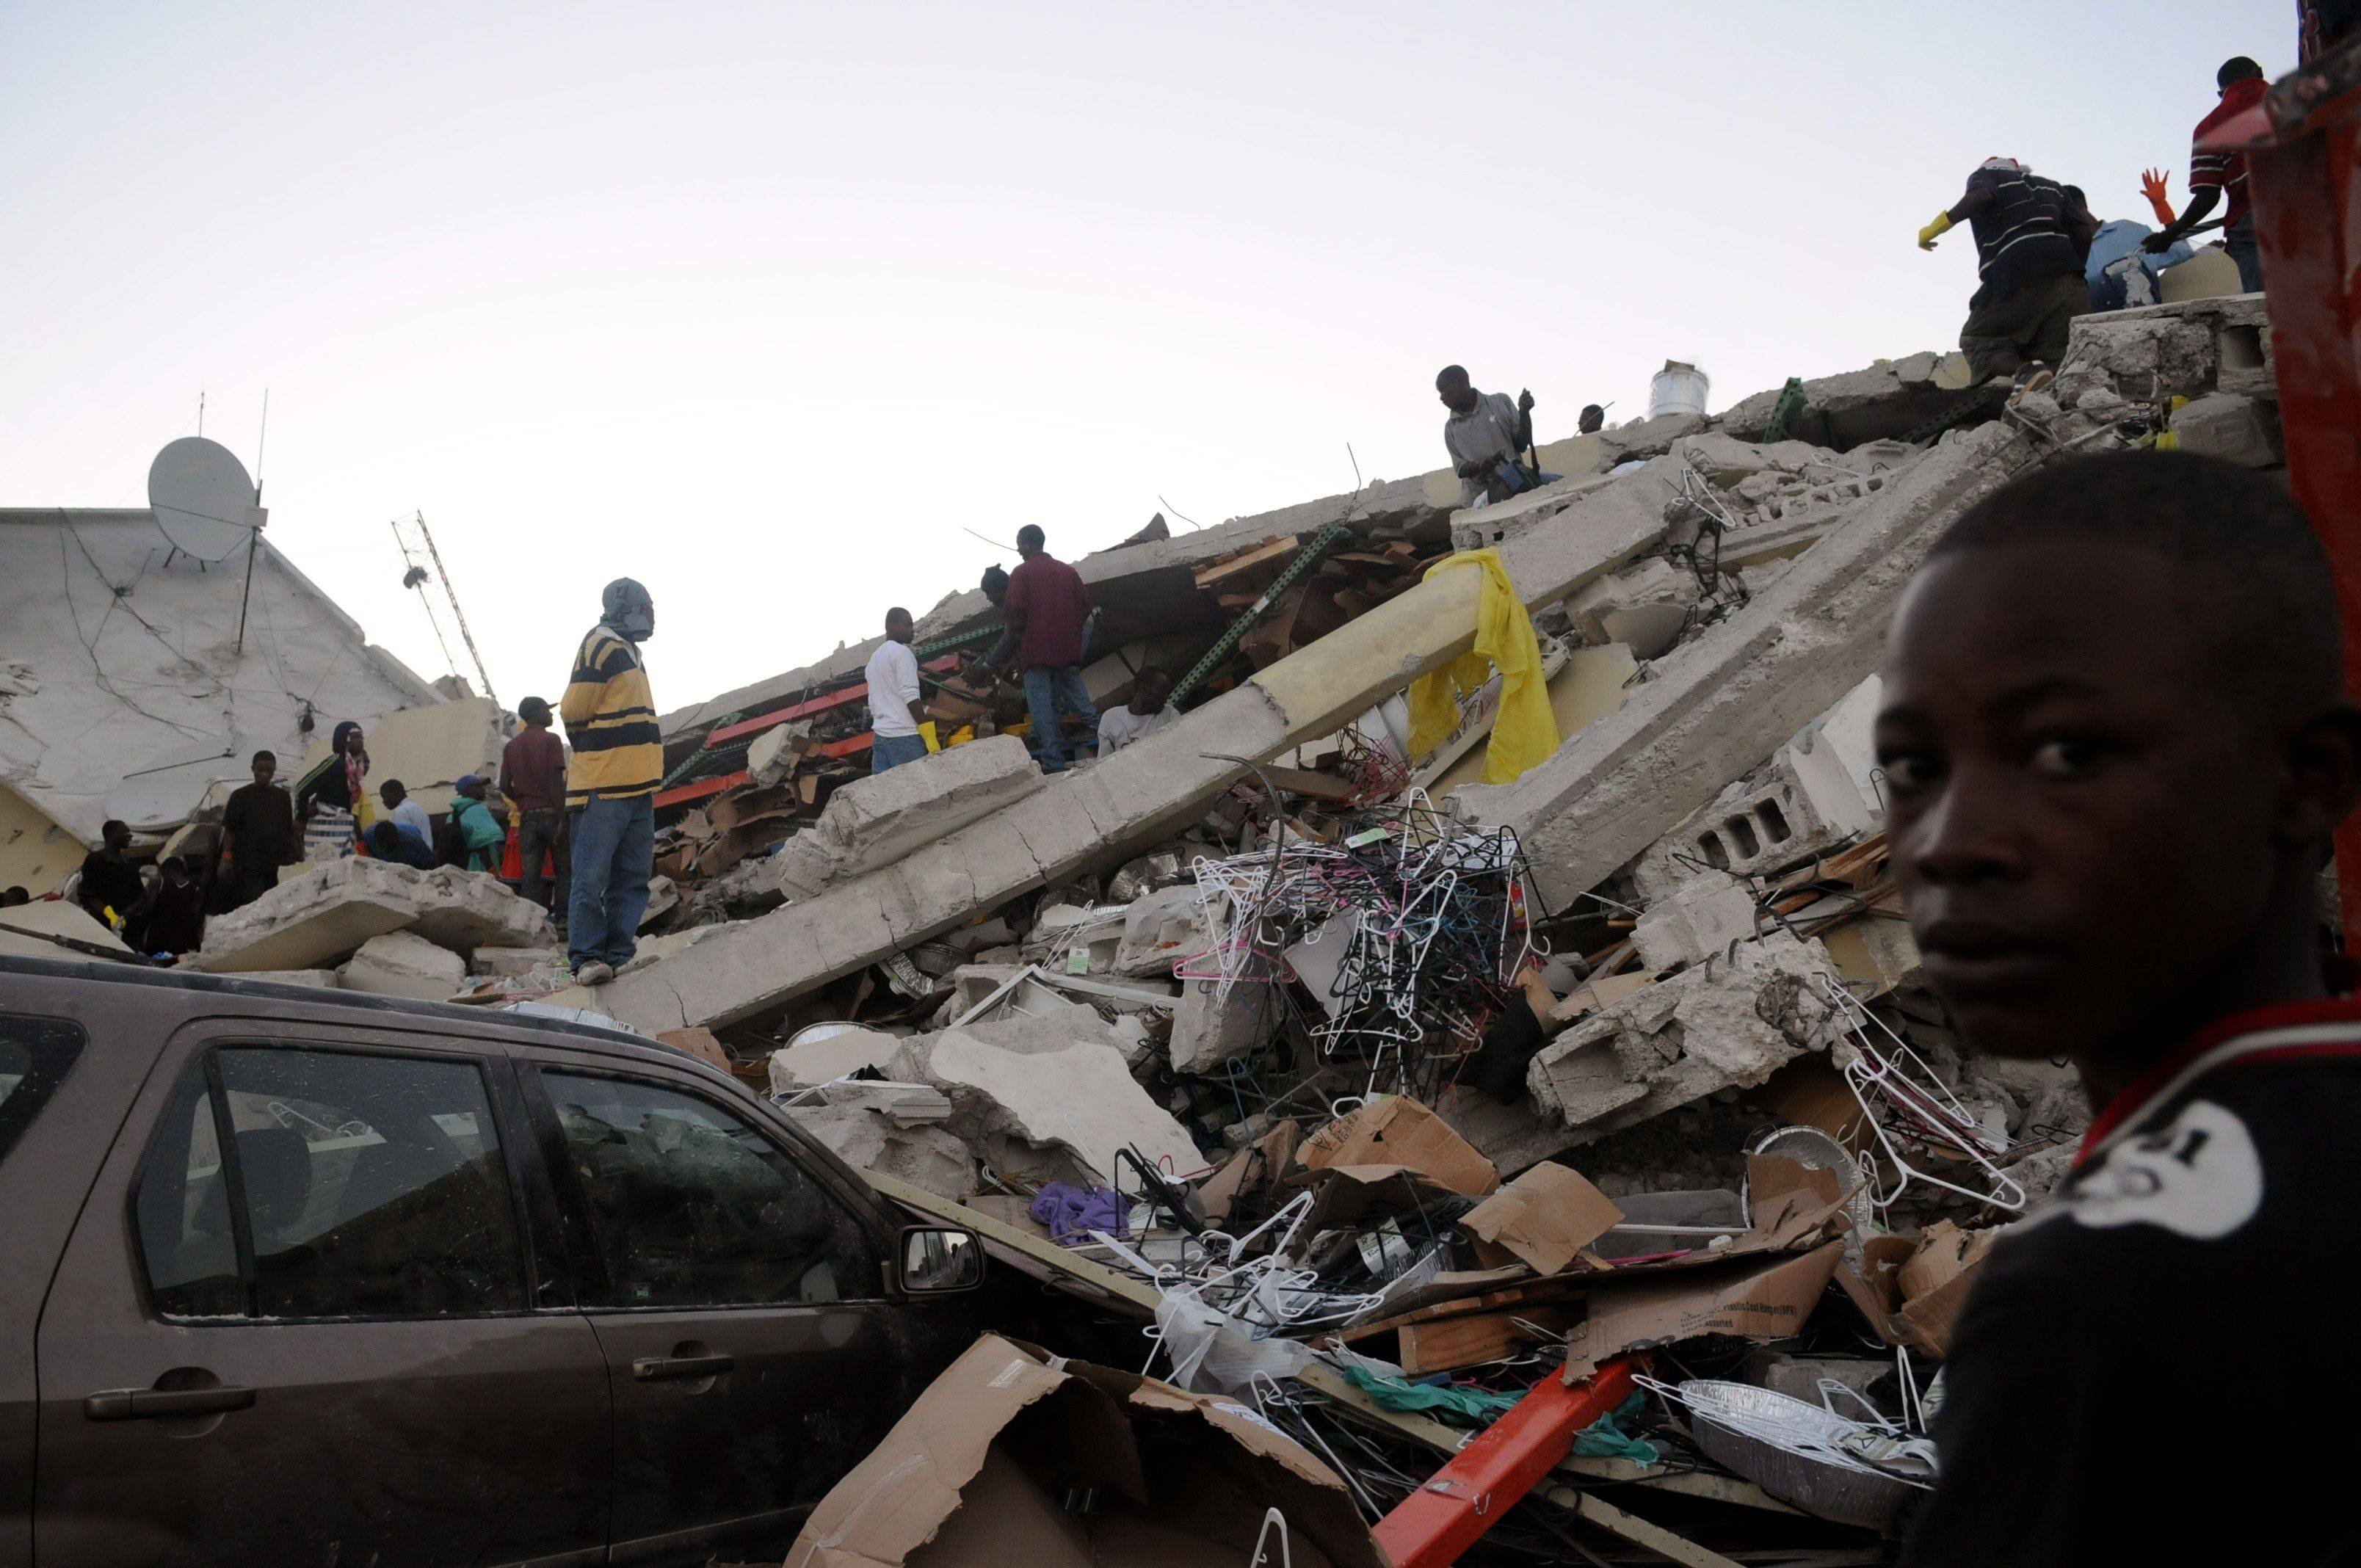 People stand on rubble along Delmas road the day after an earthquake hit Port-au-Prince, Haiti, Wednesday, Jan. 13, 2010.